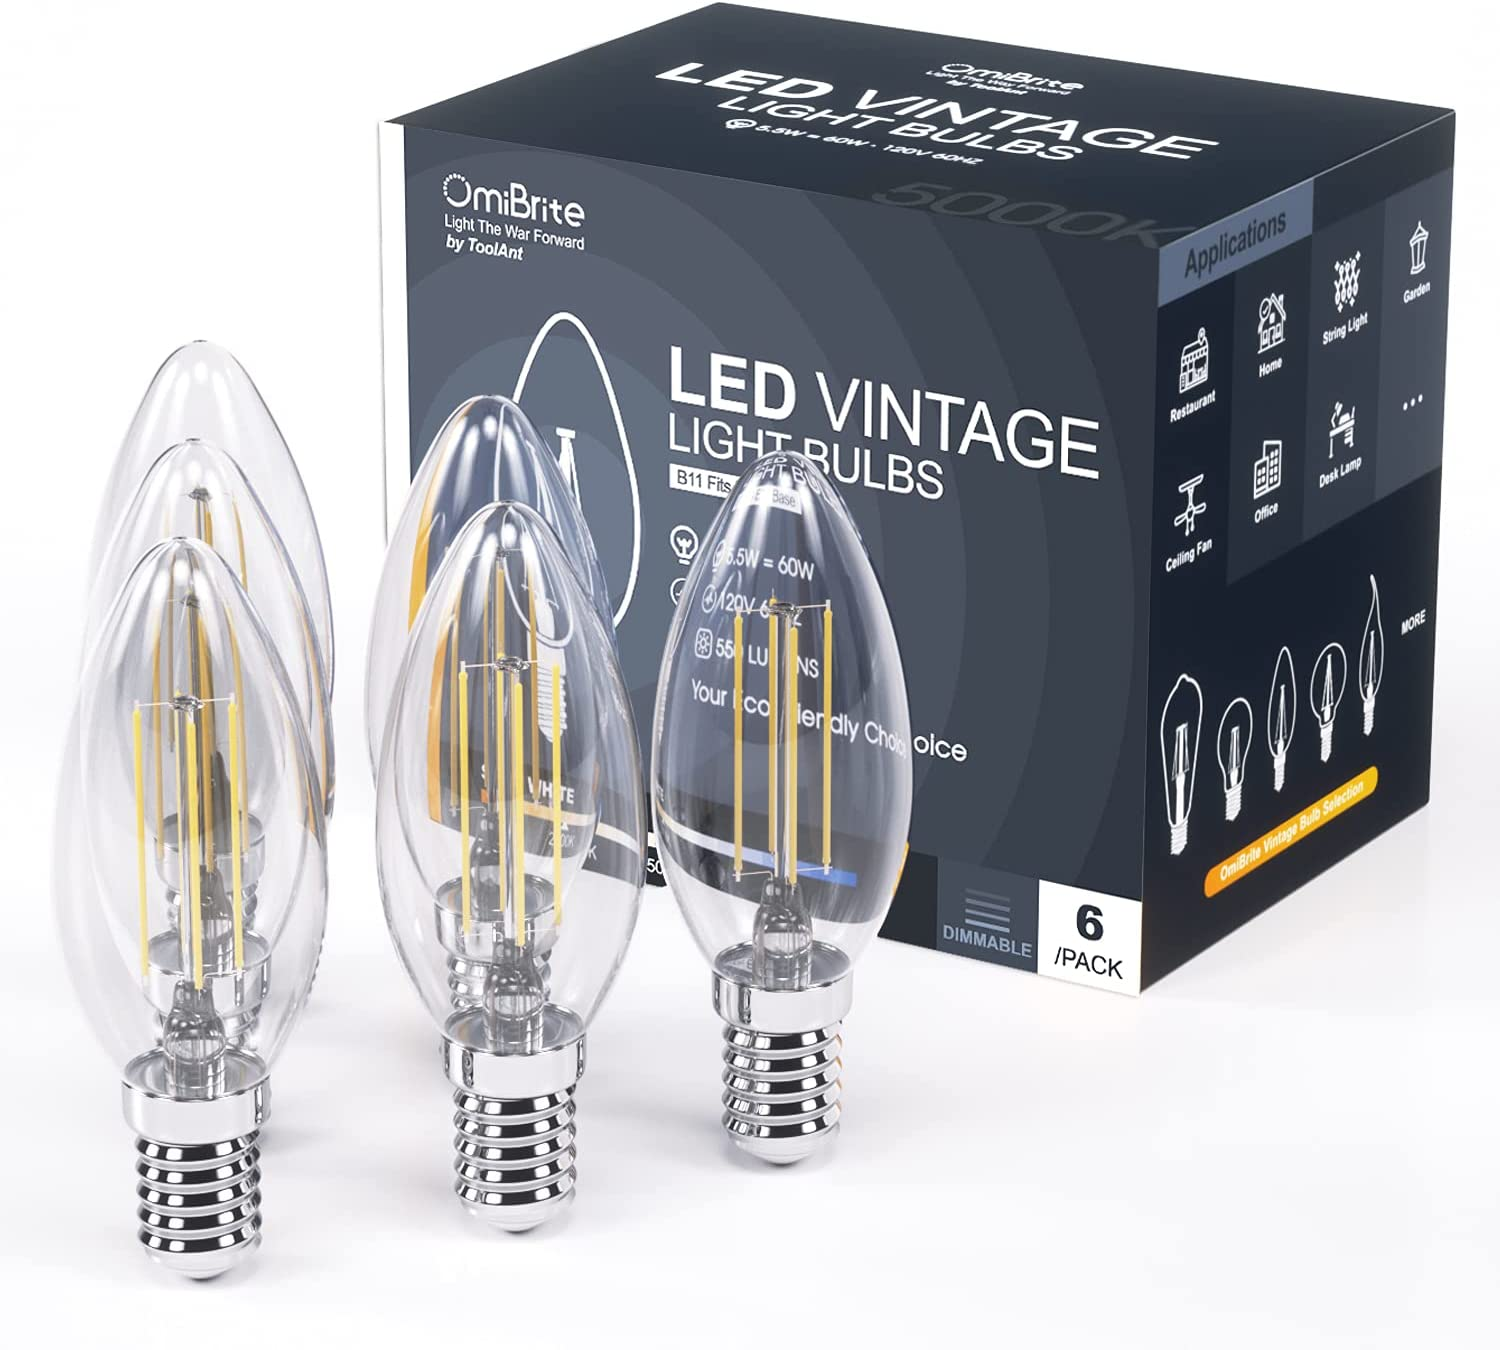 OmiBrite LED Edison Bulb Dimmable 5.5W Vintage Light Bulb 60W Equivalent 5000K Daylight White 550 Lumen B11 E12 Base Decorative Clear Glass for Bathroom Kitchen Dining Room, UL-Listed, 6/Pack